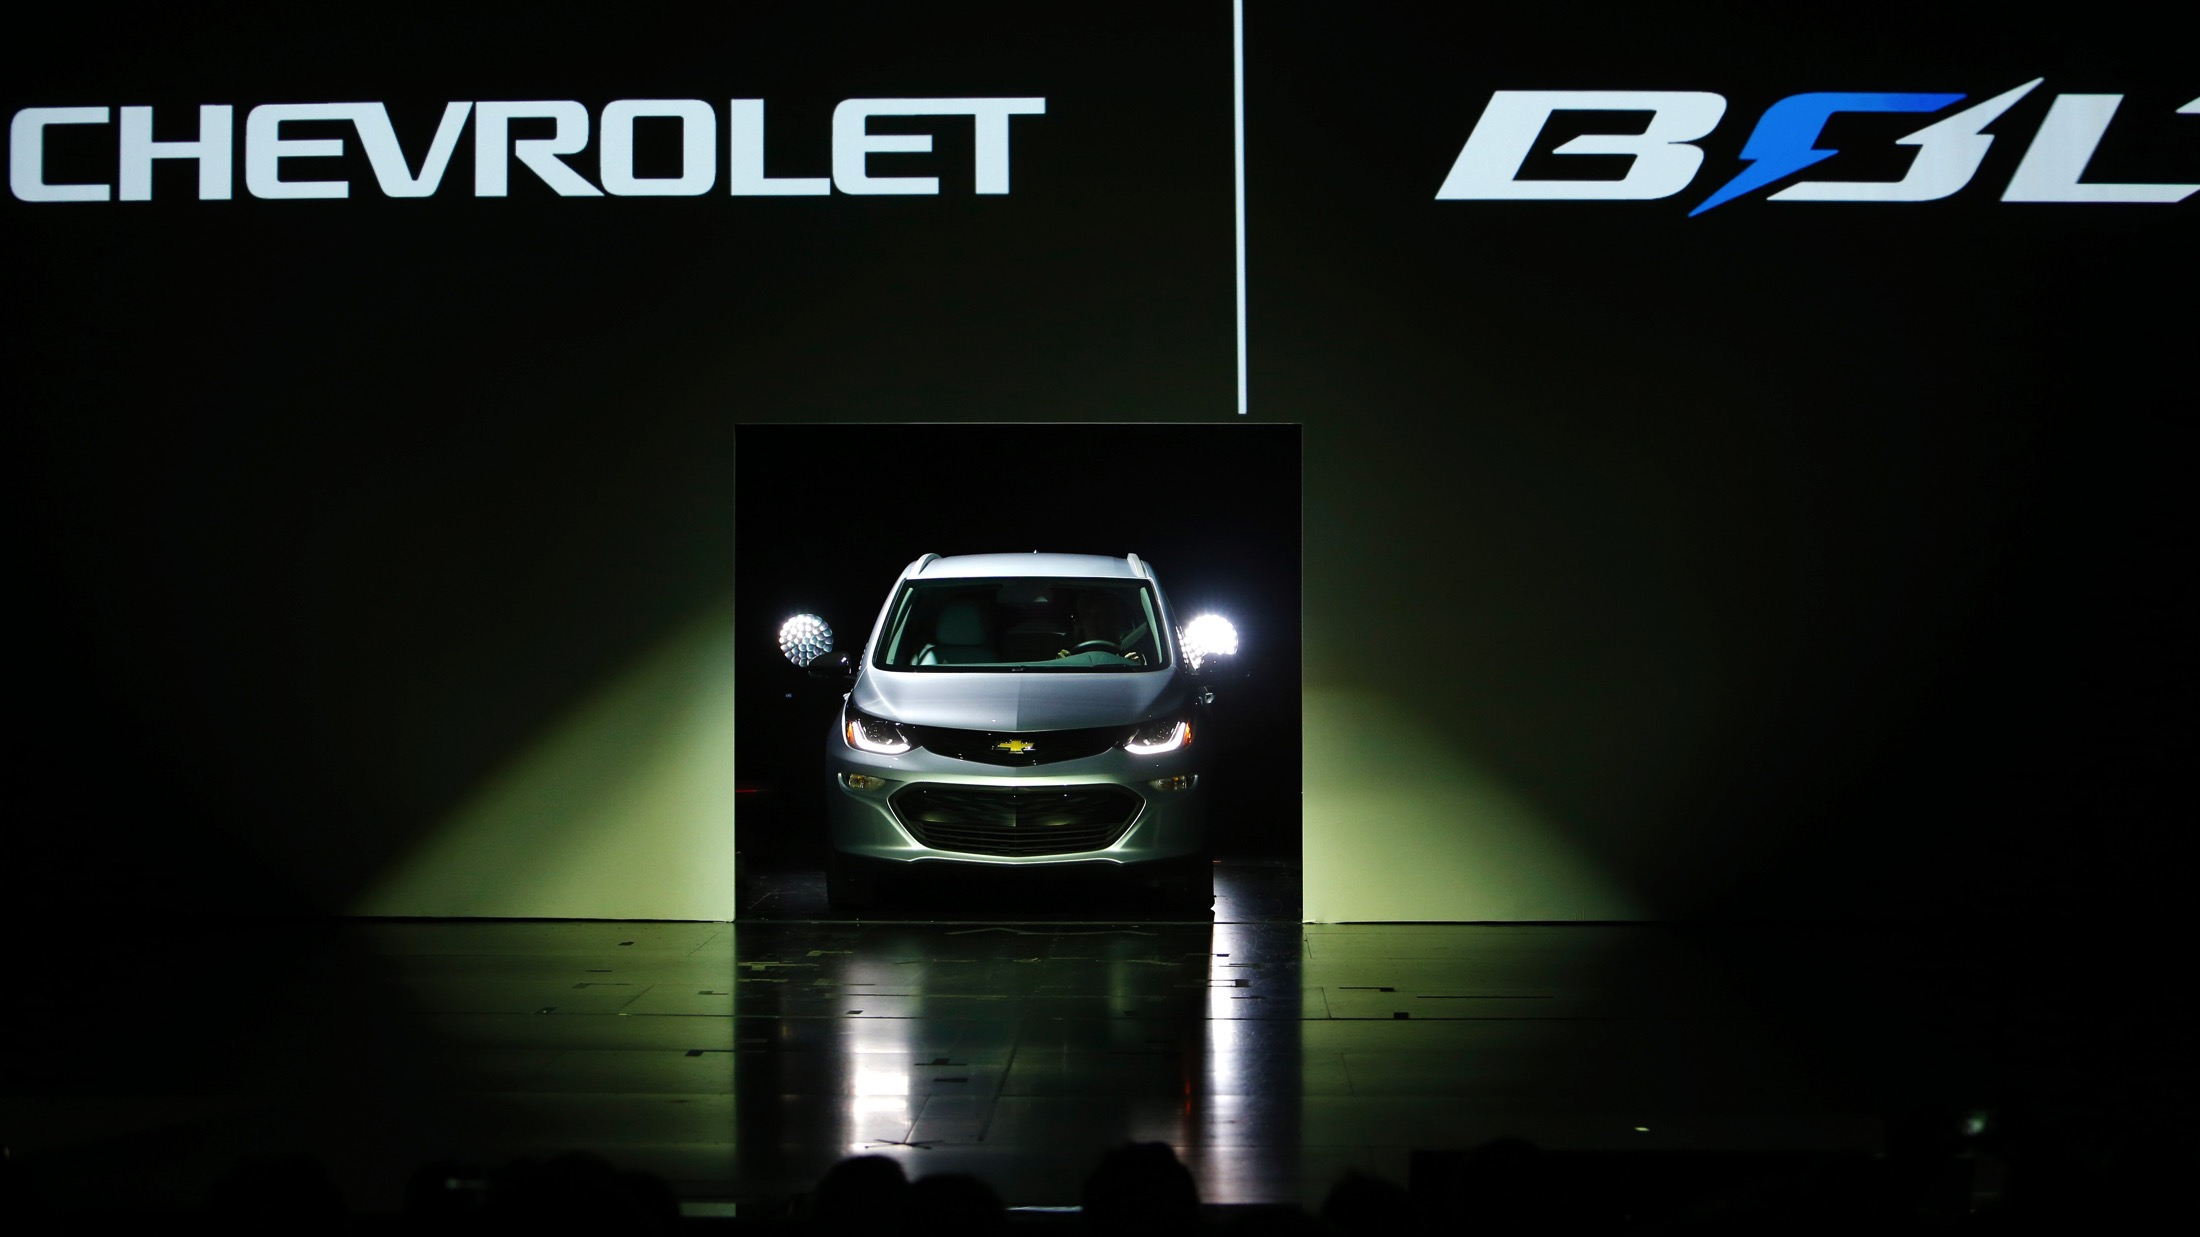 The 2017 Chevrolet Bolt EV is driven onto the stage during a General Motors keynote address at the 2016 CES trade show in Las Vegas, Nevada January 6, 2016. The car will have a 200-mile range and cost about $30,000, said GM Chairman and CEO Mary Barra. REUTERS/Steve Marcus - RTX21BNY